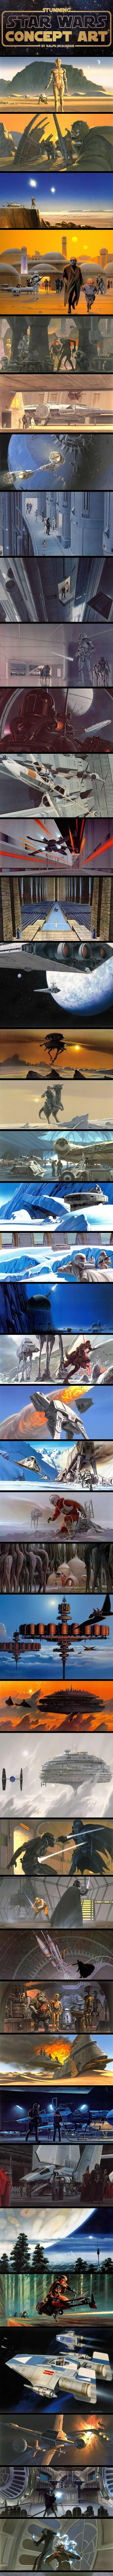 The gorgeous original Star Wars concept art by Ralph McQuarrie